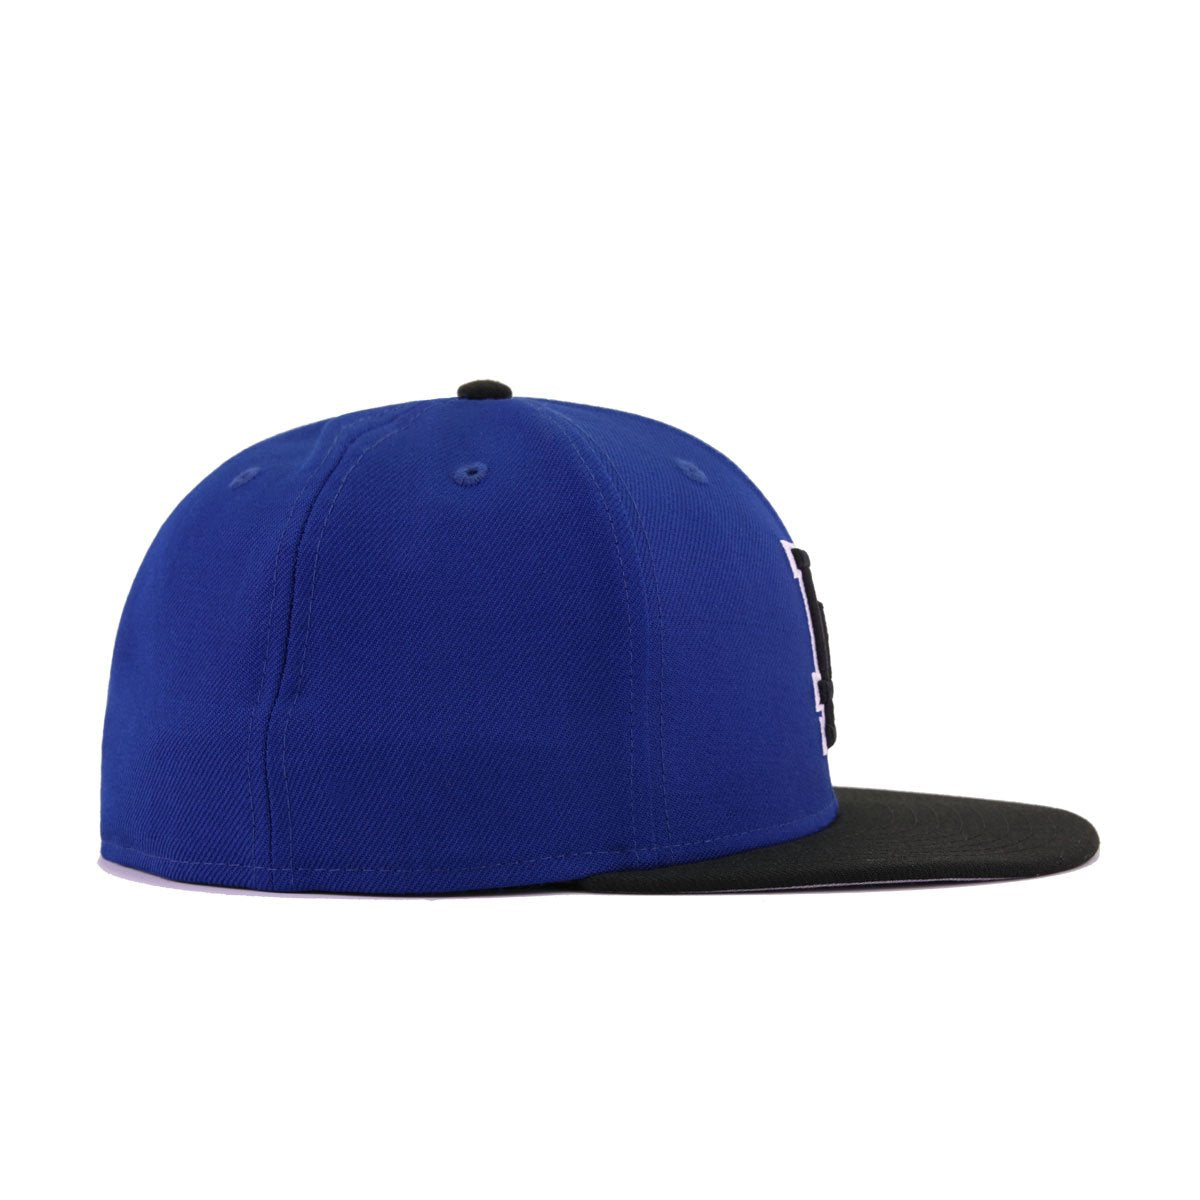 Los Angeles Dodgers Light Royal Blue Black New Era 59Fifty Fitted